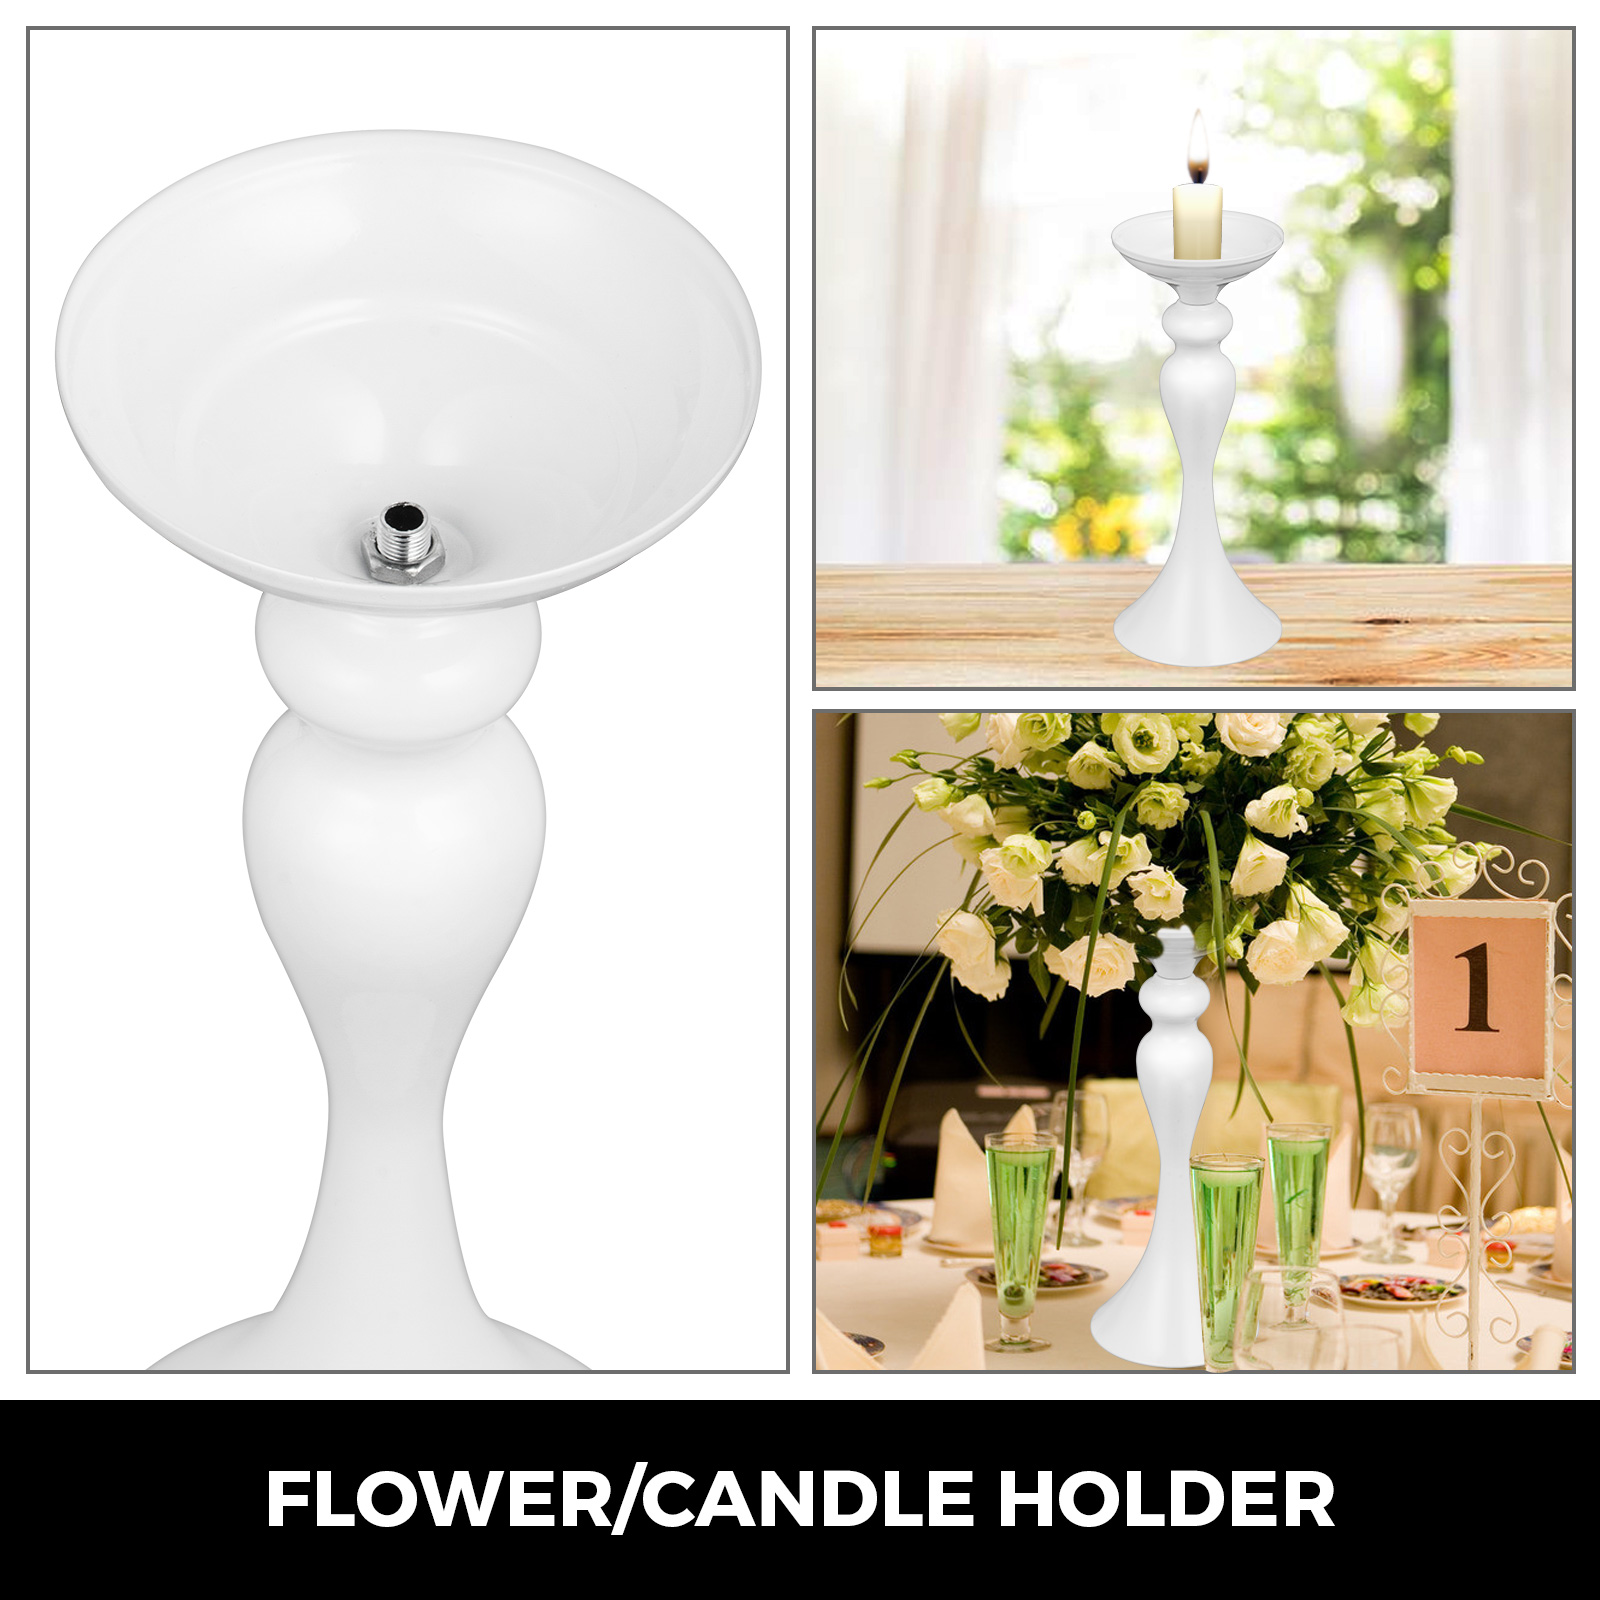 Flower-Rack-for-Wedding-Metal-Candle-Stand-4-11pcs-Centerpiece-Flower-Vase thumbnail 207